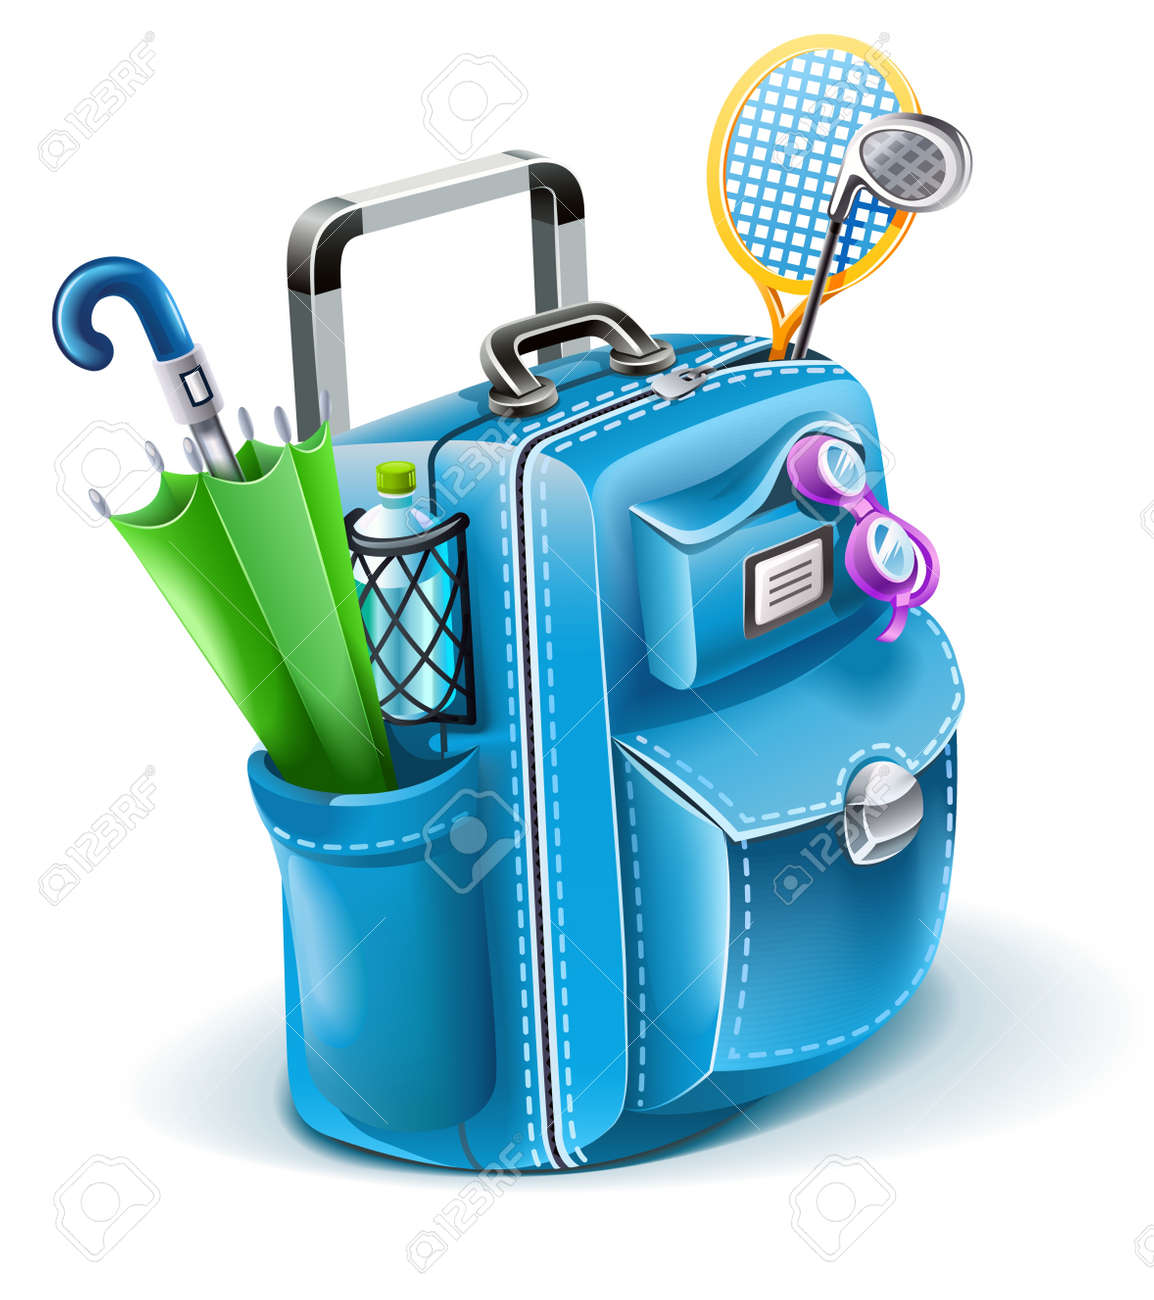 travel bag with objects for entertainment illustration isolated on white background Stock Vector - 9830126